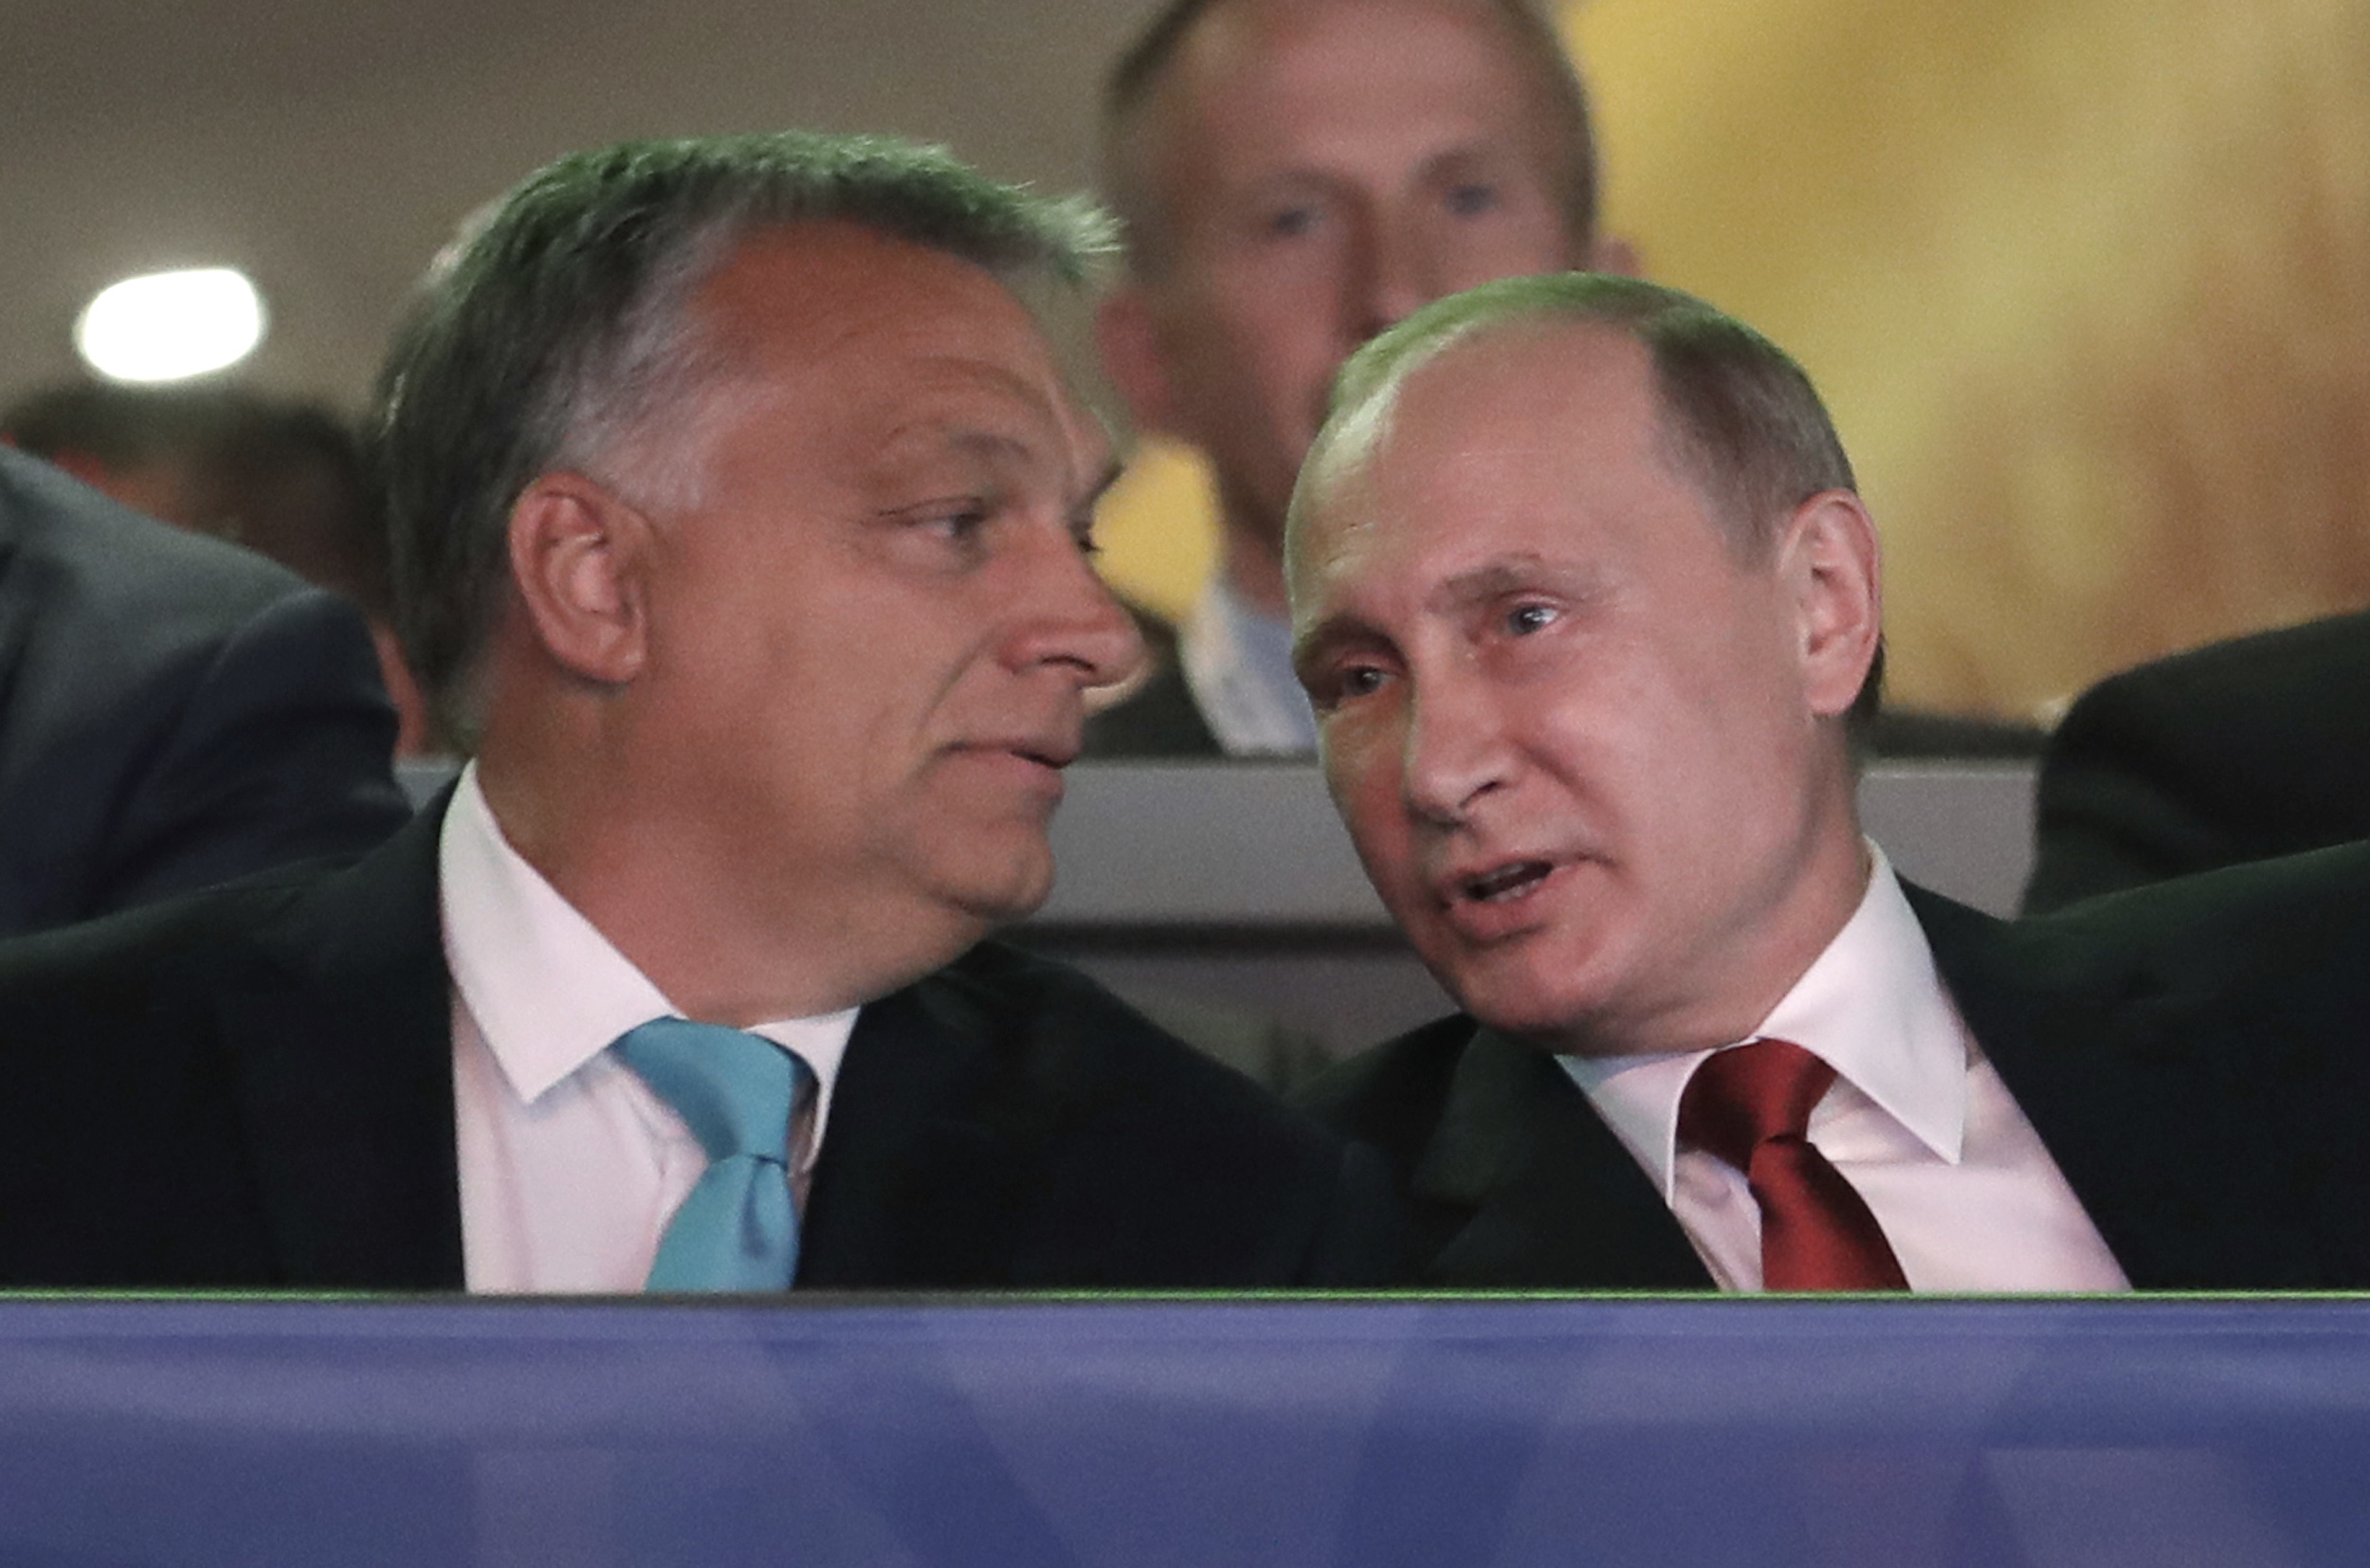 Russian President Vladimir Putin, right, talks to Hungarian Prime Minister Viktor Orban after arriving at the World Judo Championships in Budapest, Hungary, Aug. 28, 2017.